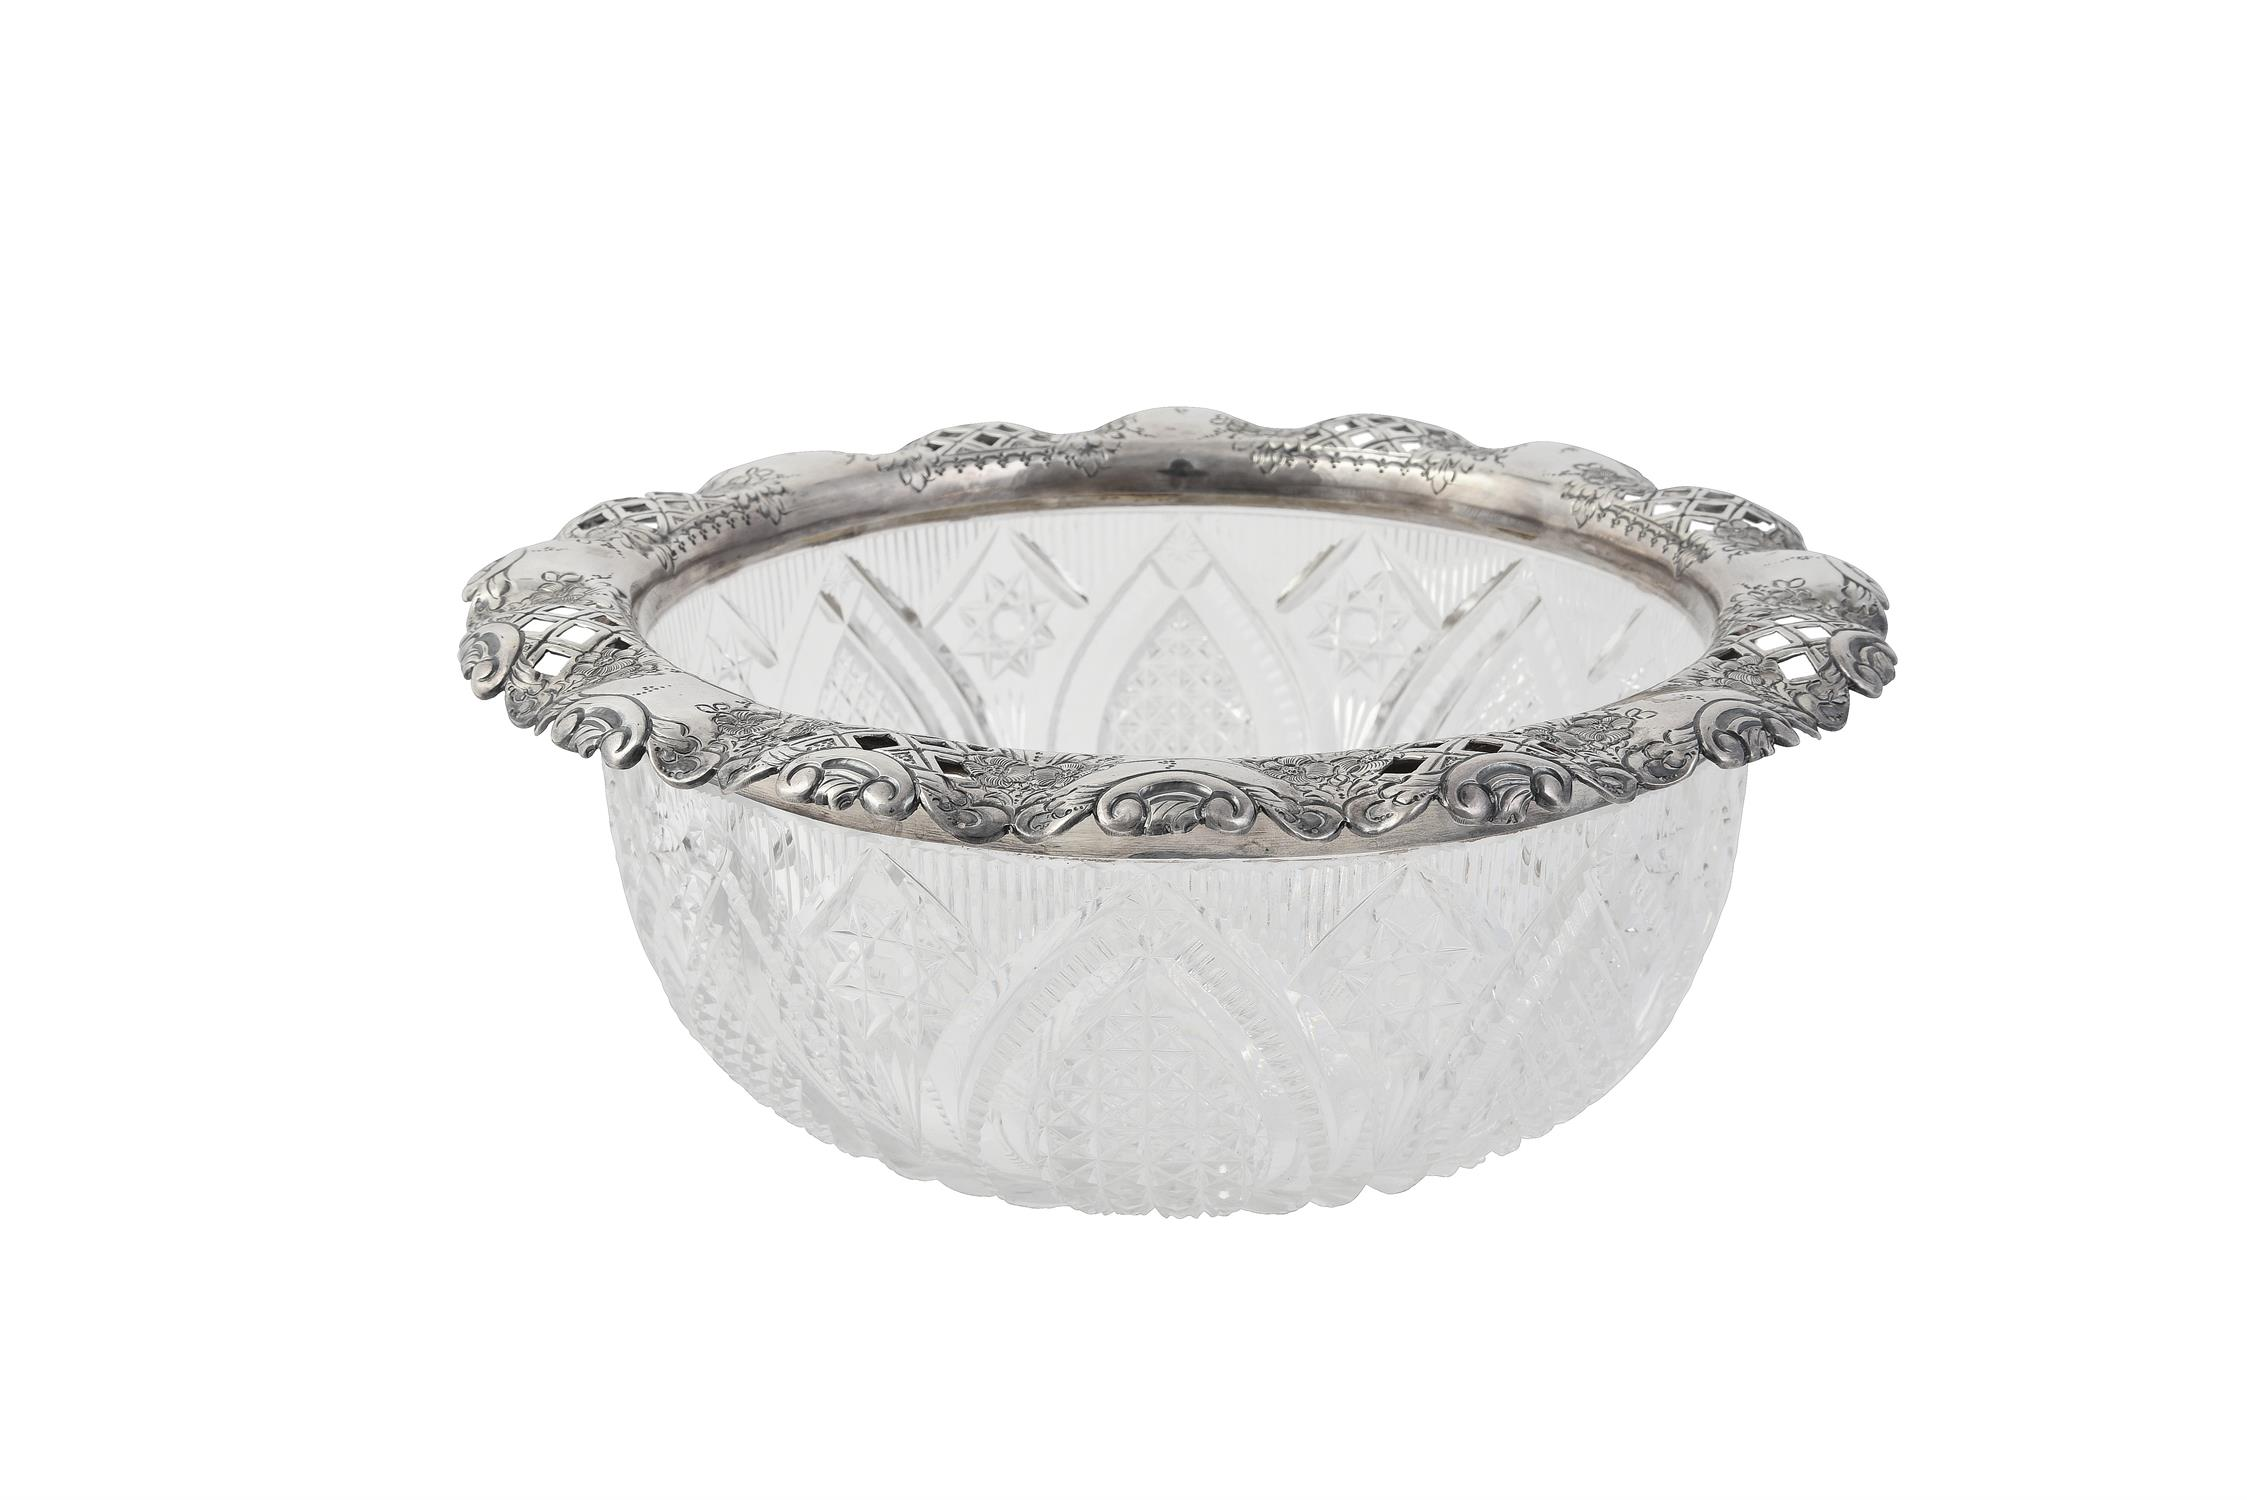 A late Victorian silver mounted cut glass bowl by Thomas Latham & Ernest Morton